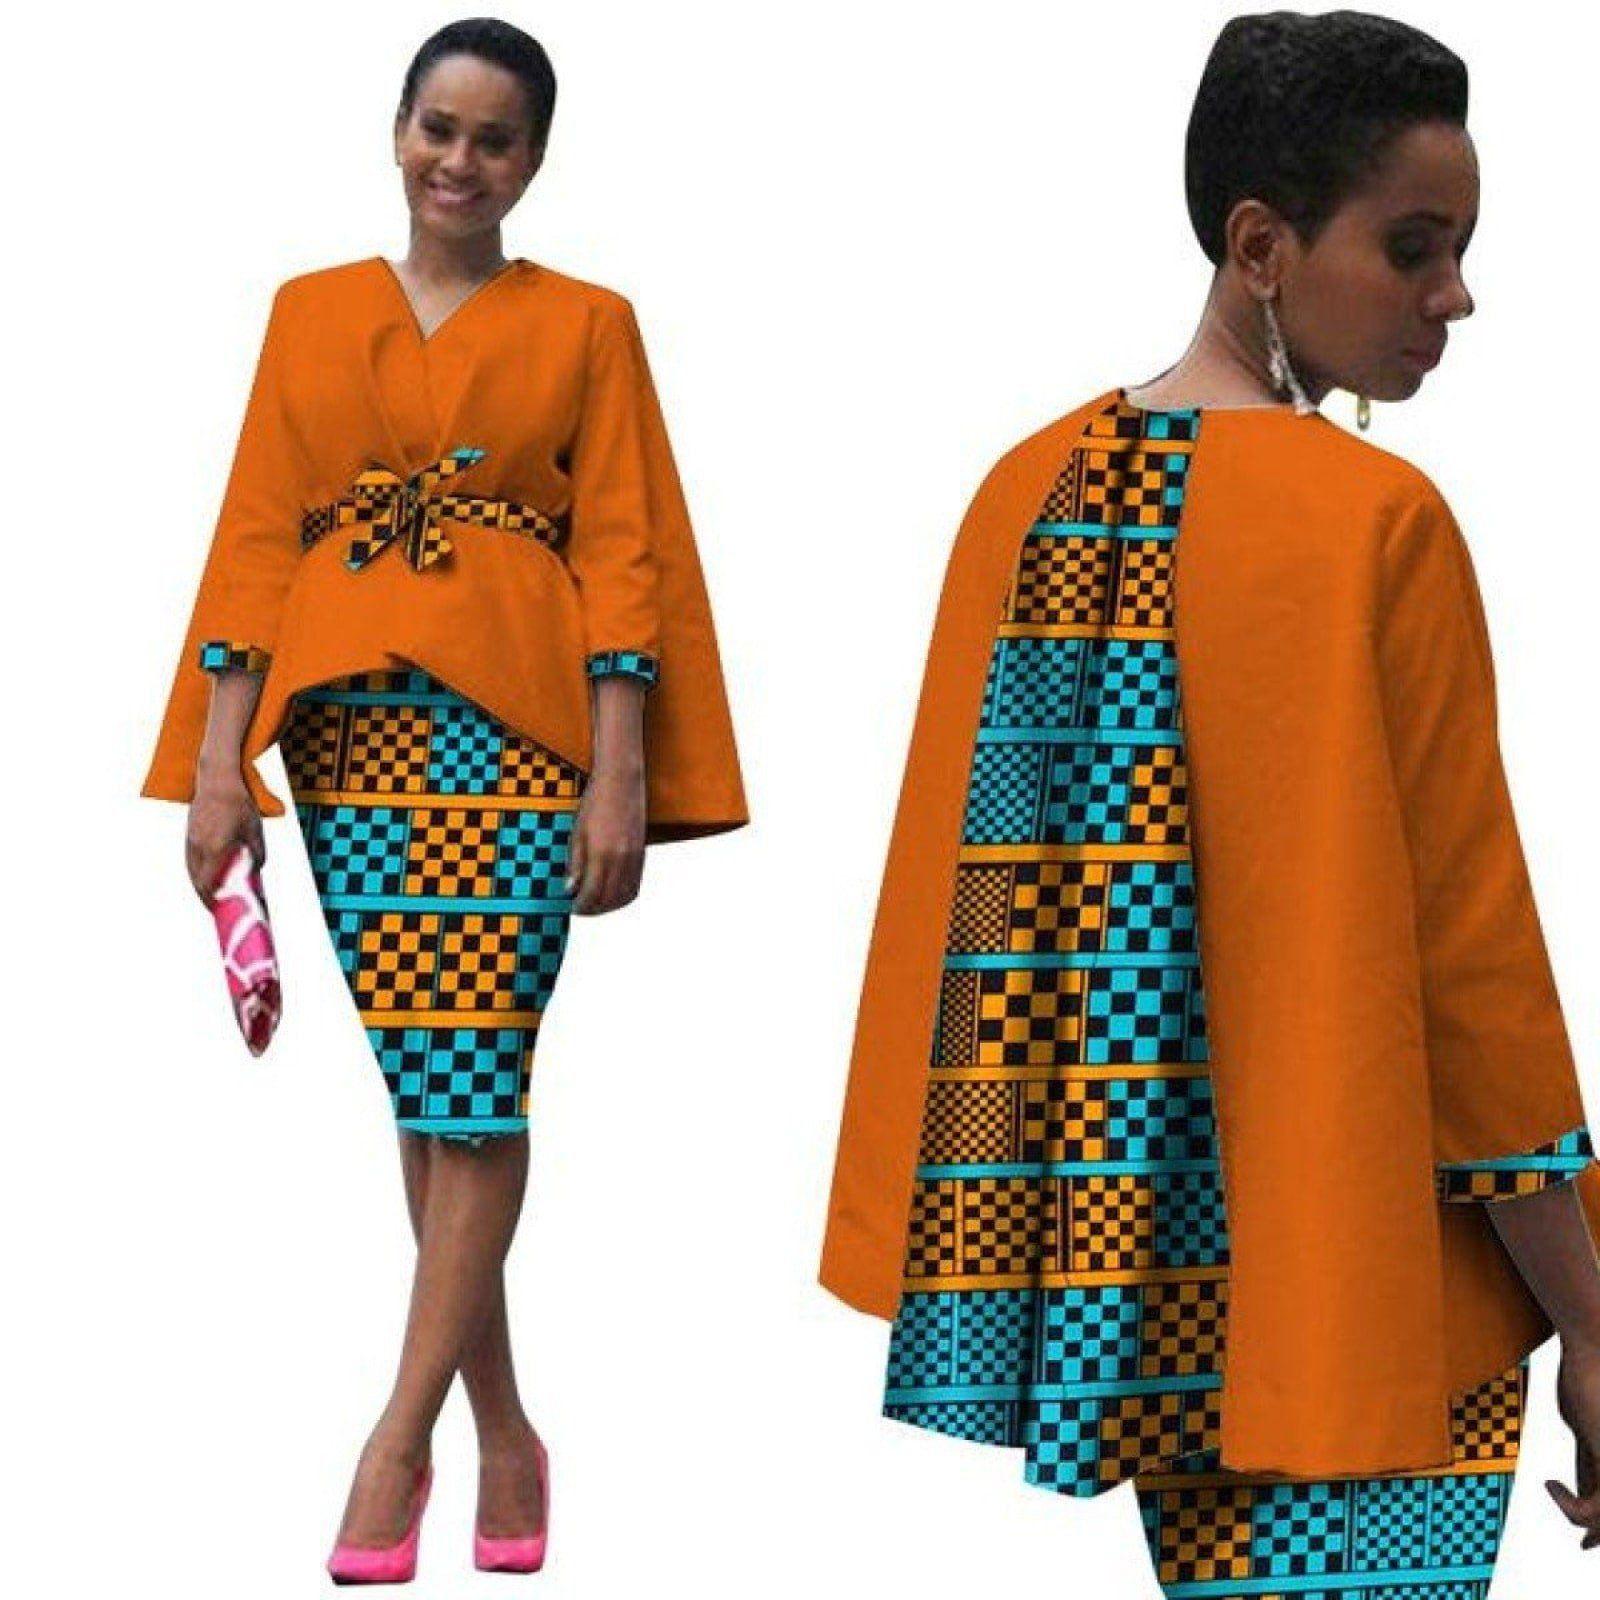 0d17806e39d Africa Style Women African Clothing  2 Piece Set Dress Suit for Women Tops  Jacket and Print Skirt Clothing  owame11